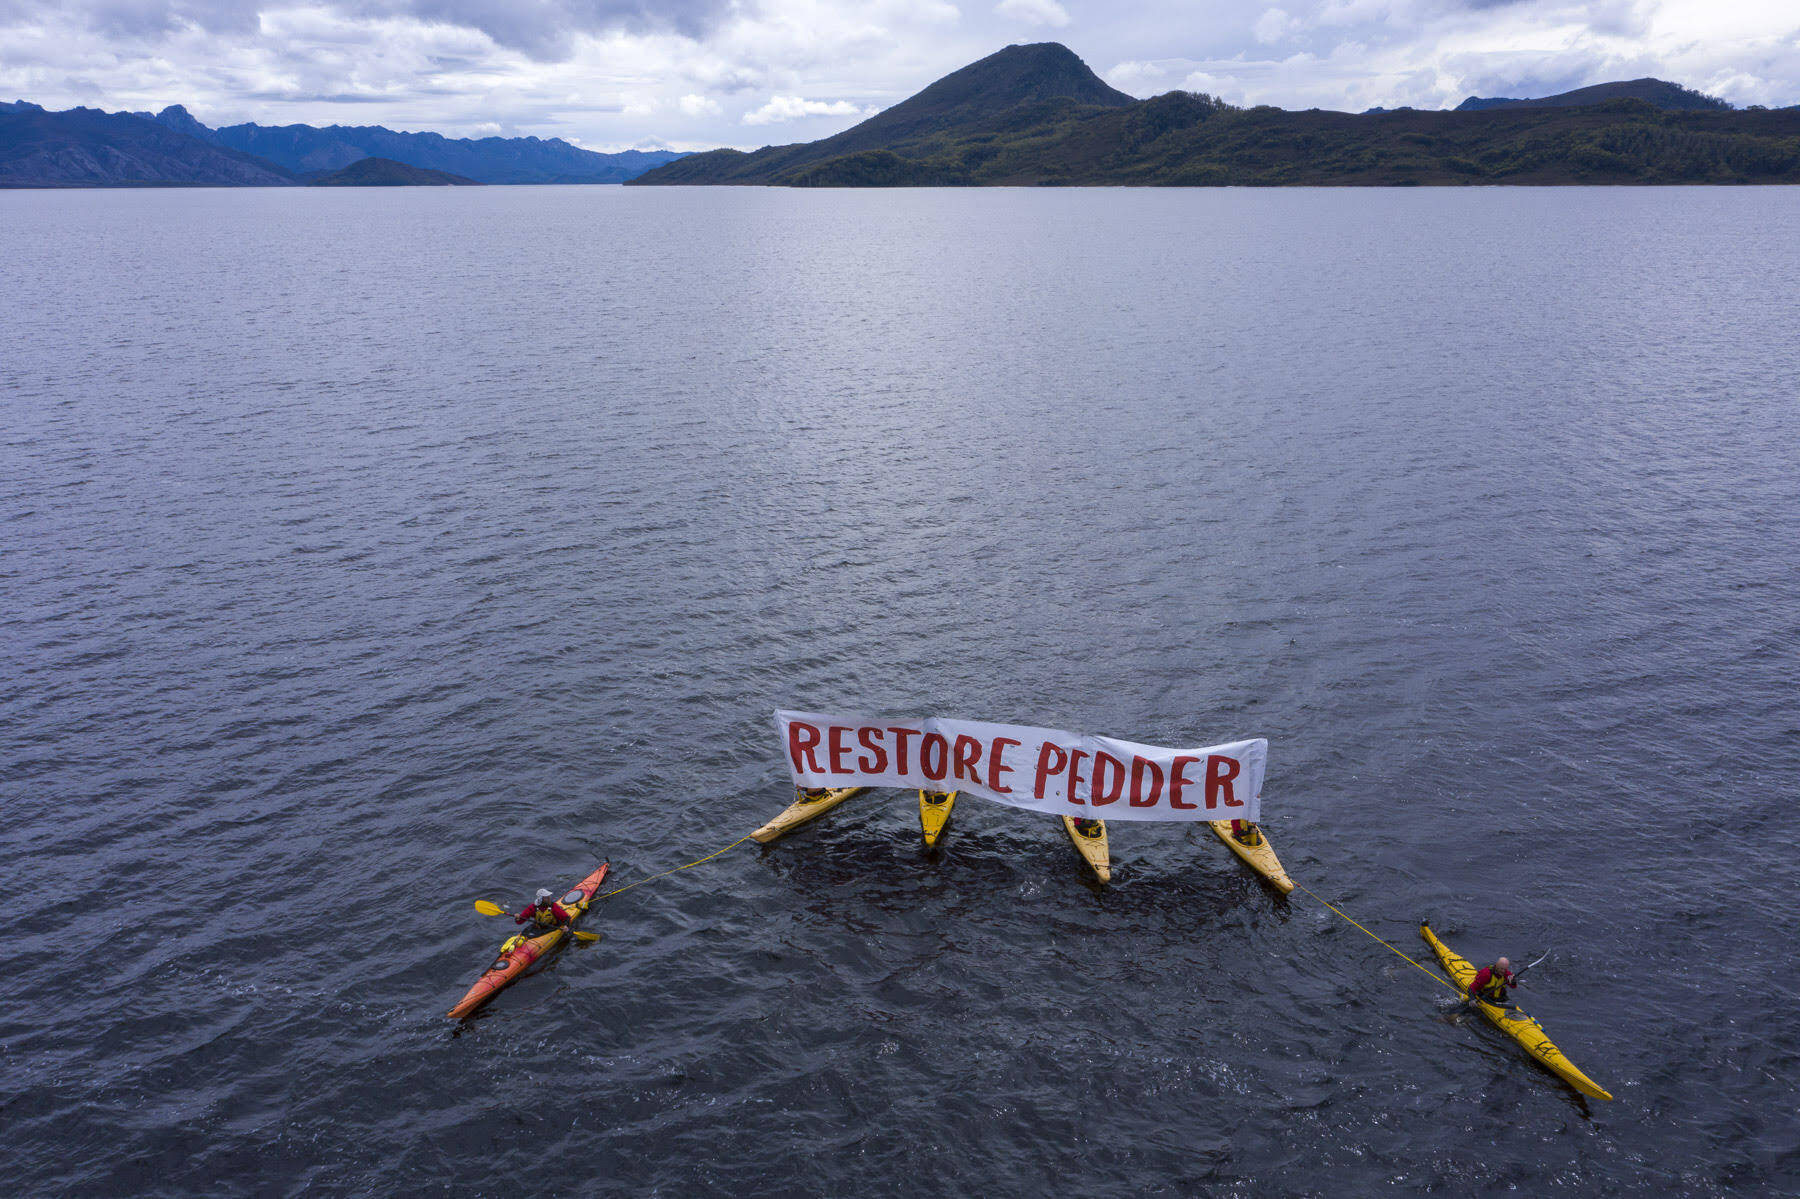 Paddle for Pedder on the impoundment 2020 (Credit: Rob Blakers)